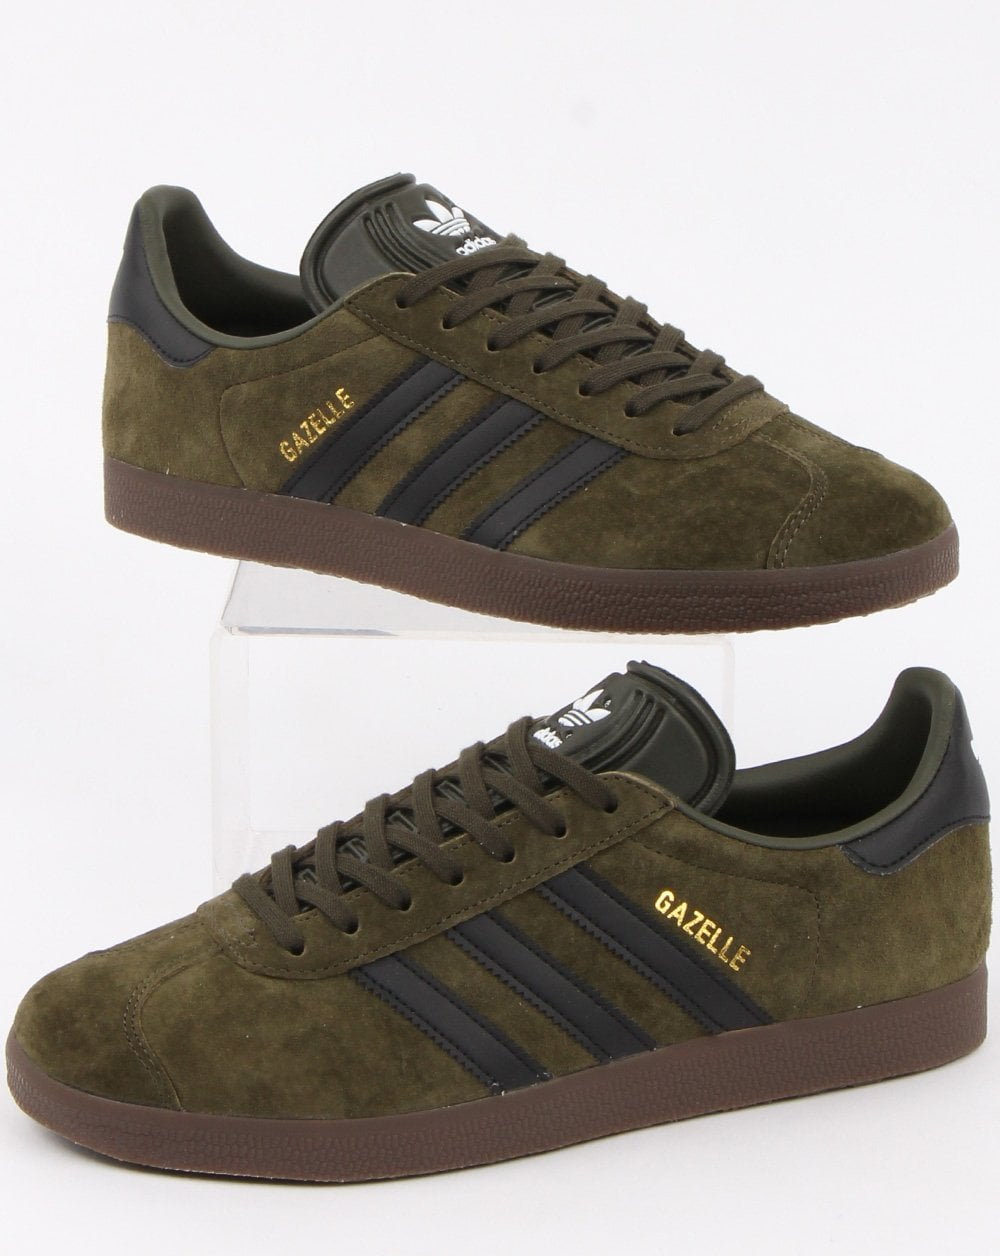 new concept b42c6 7e284 adidas Trainers Adidas Gazelle Trainers Night Olive  Black gum